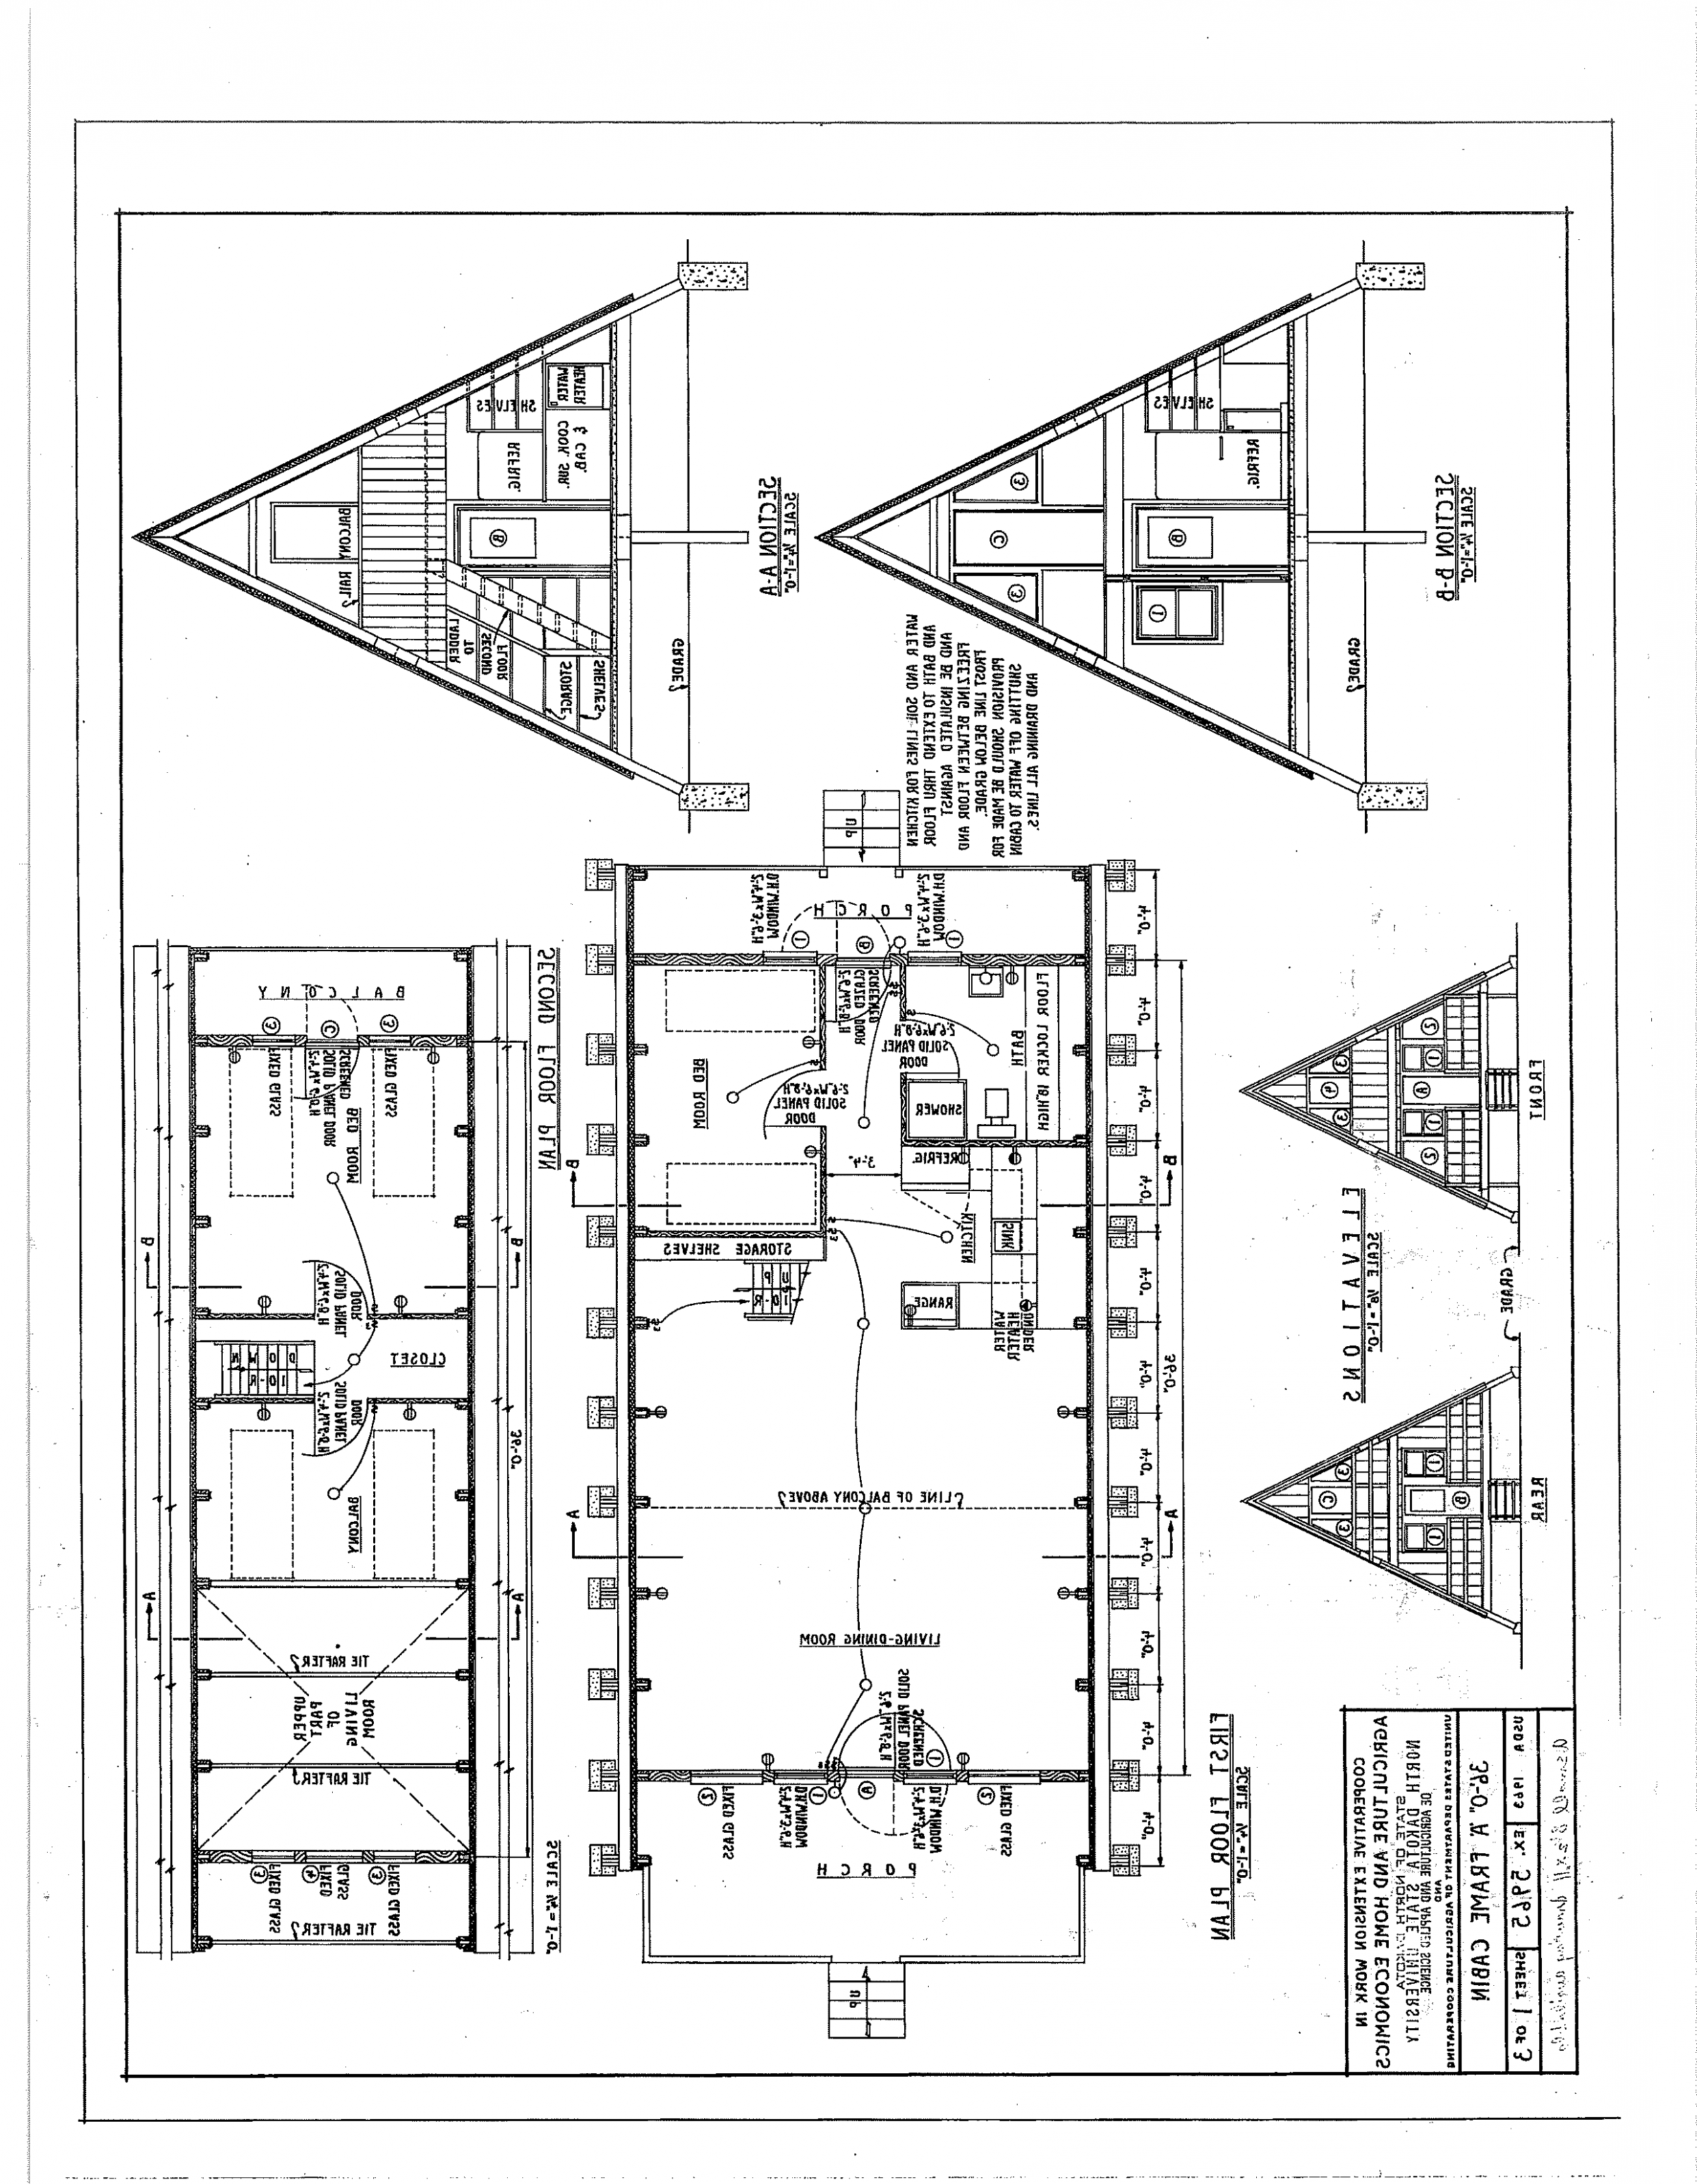 Free A Frame Cabin Plans Blueprints Construction Documents Sds Plans Free House Plans A Frame House Plans A Frame Cabin Plans A Frame House